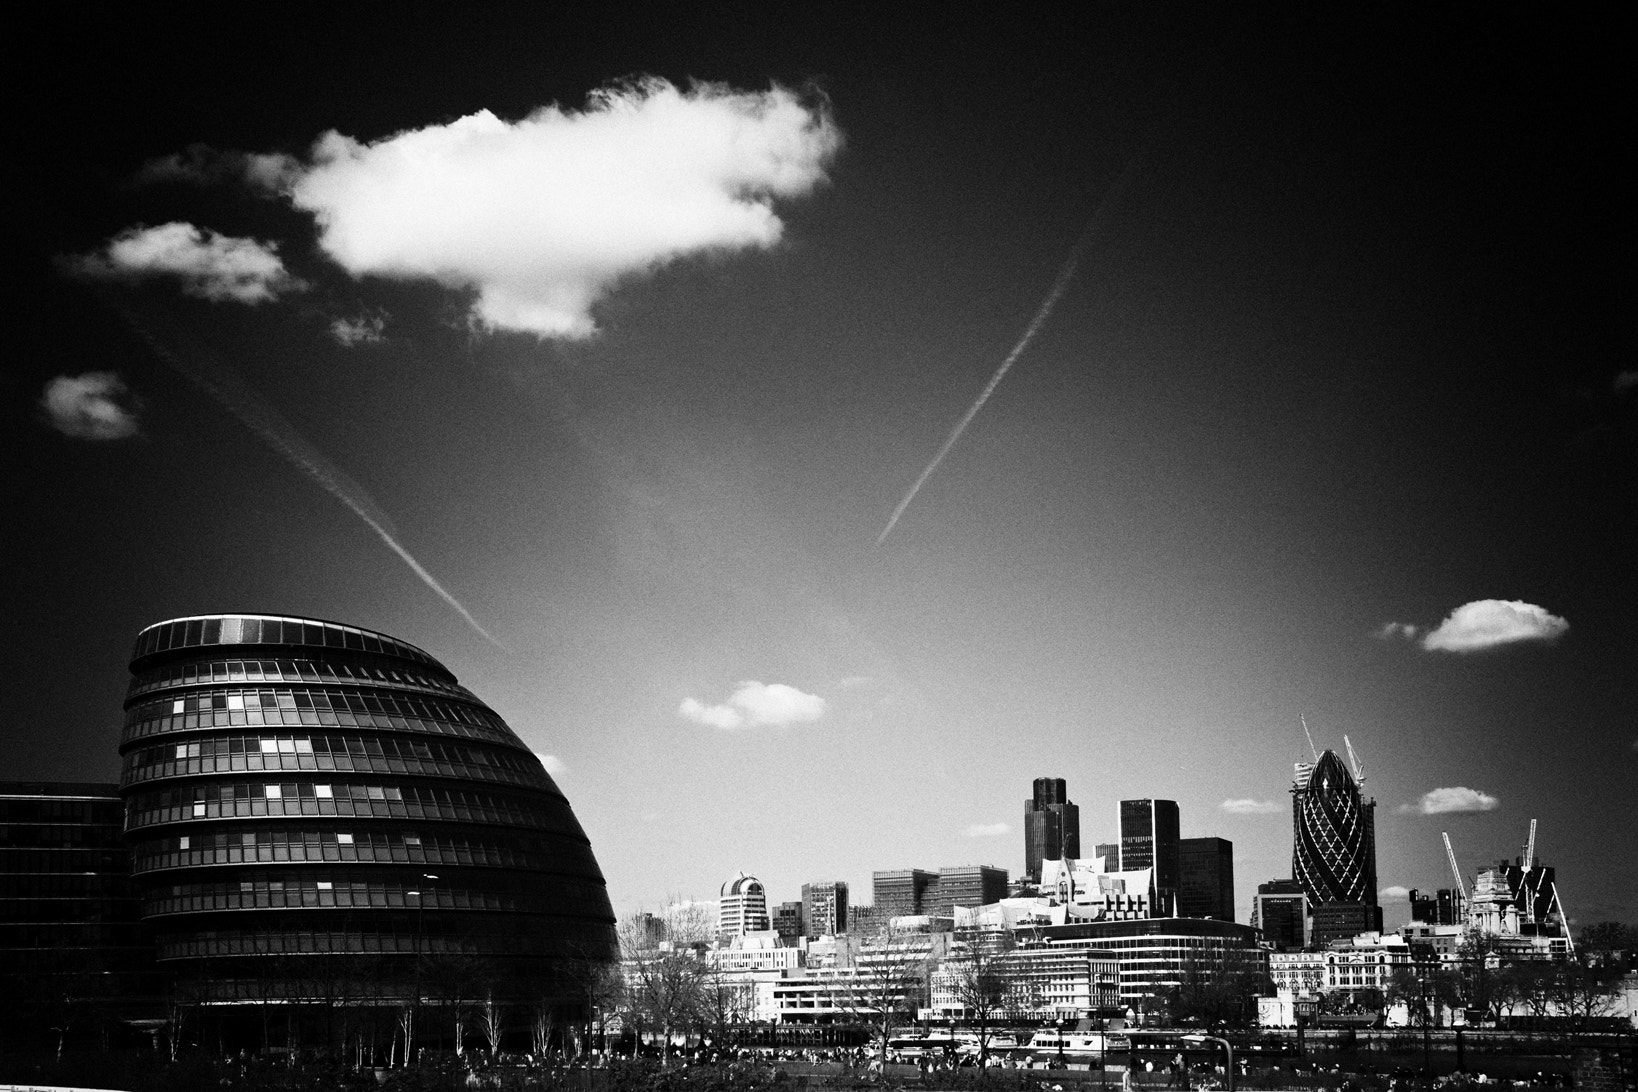 Photograph London 2010 6 by fre Valenti on 500px